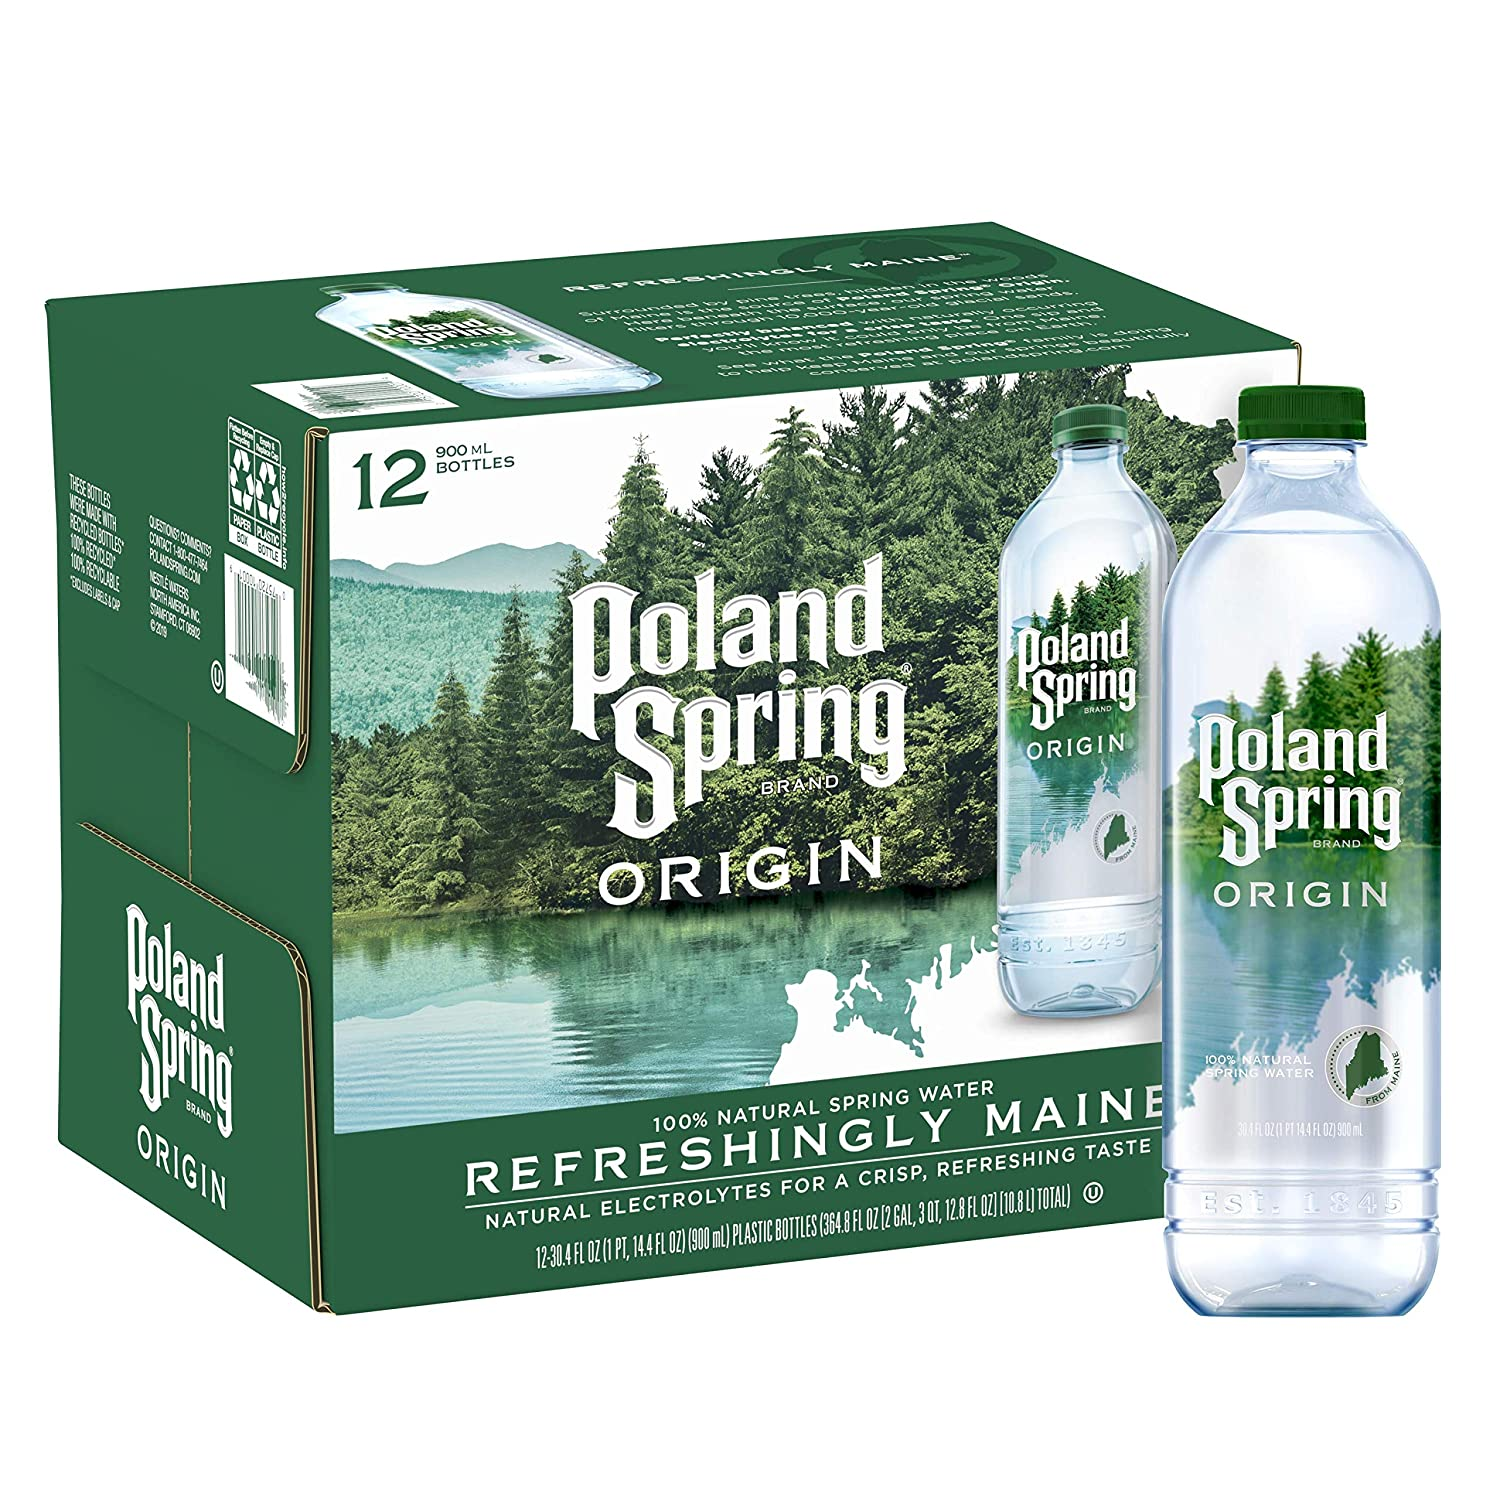 Which type of bottled water is suitable for plants